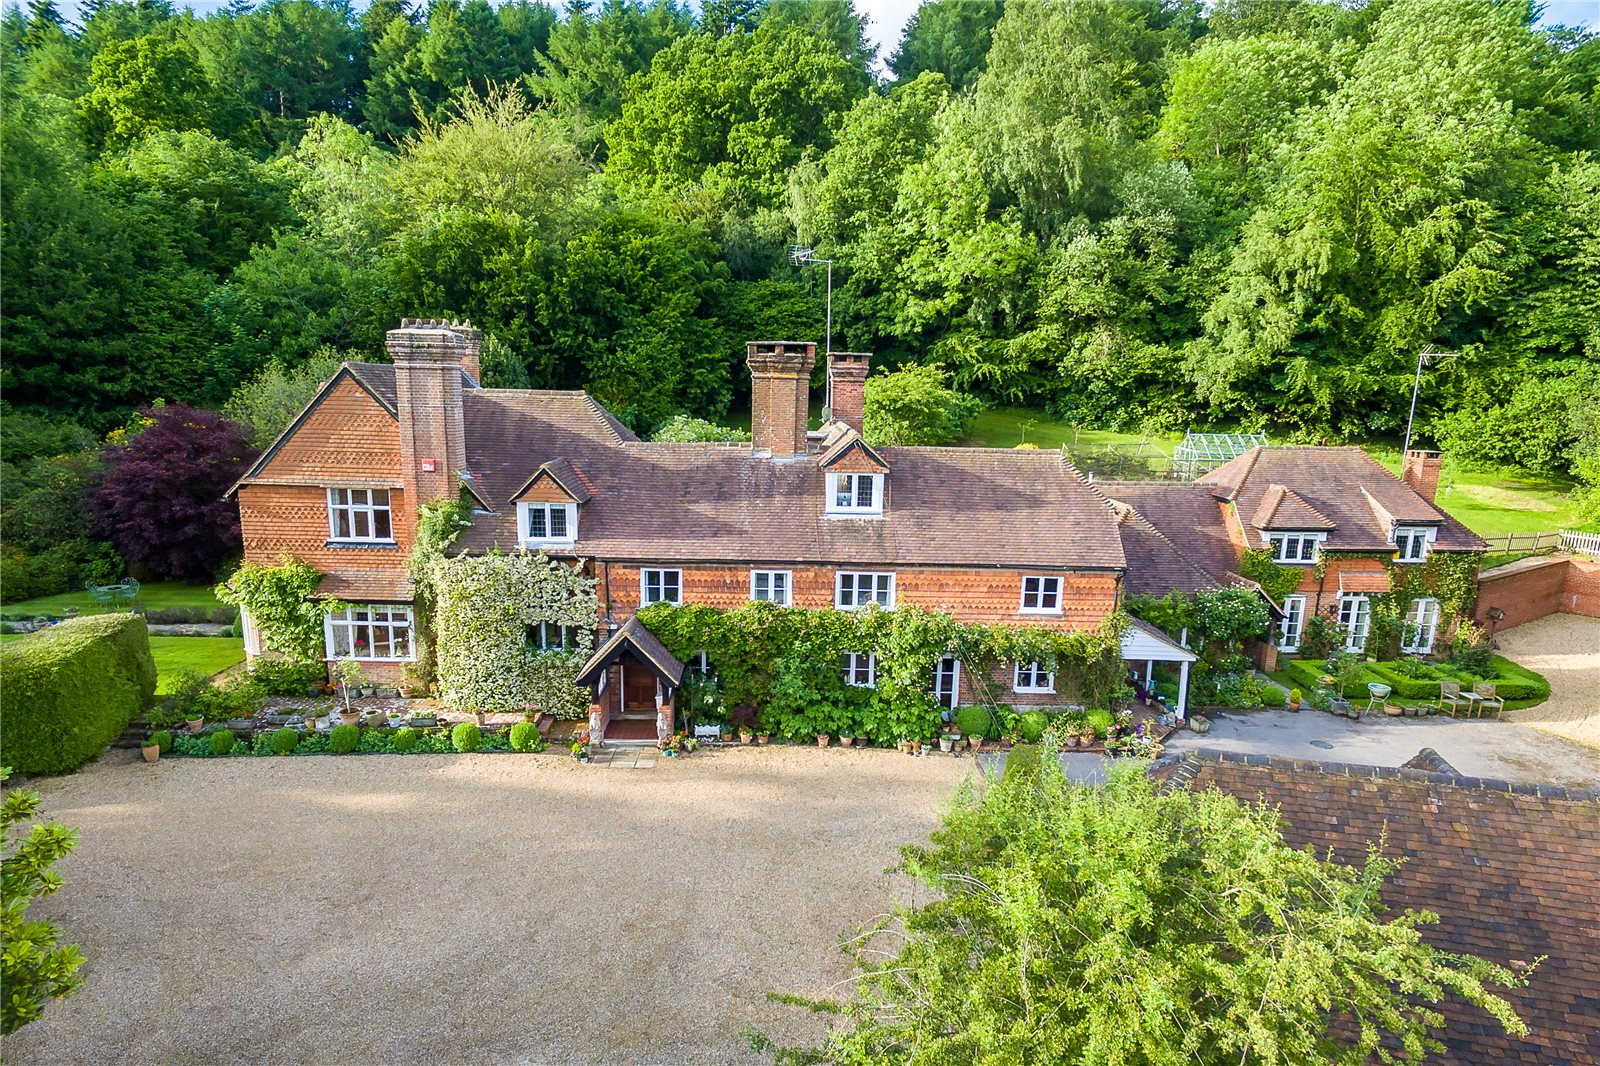 Single Family Home for Sale at Bell Vale Lane, Haslemere, Surrey, GU27 Haslemere, England